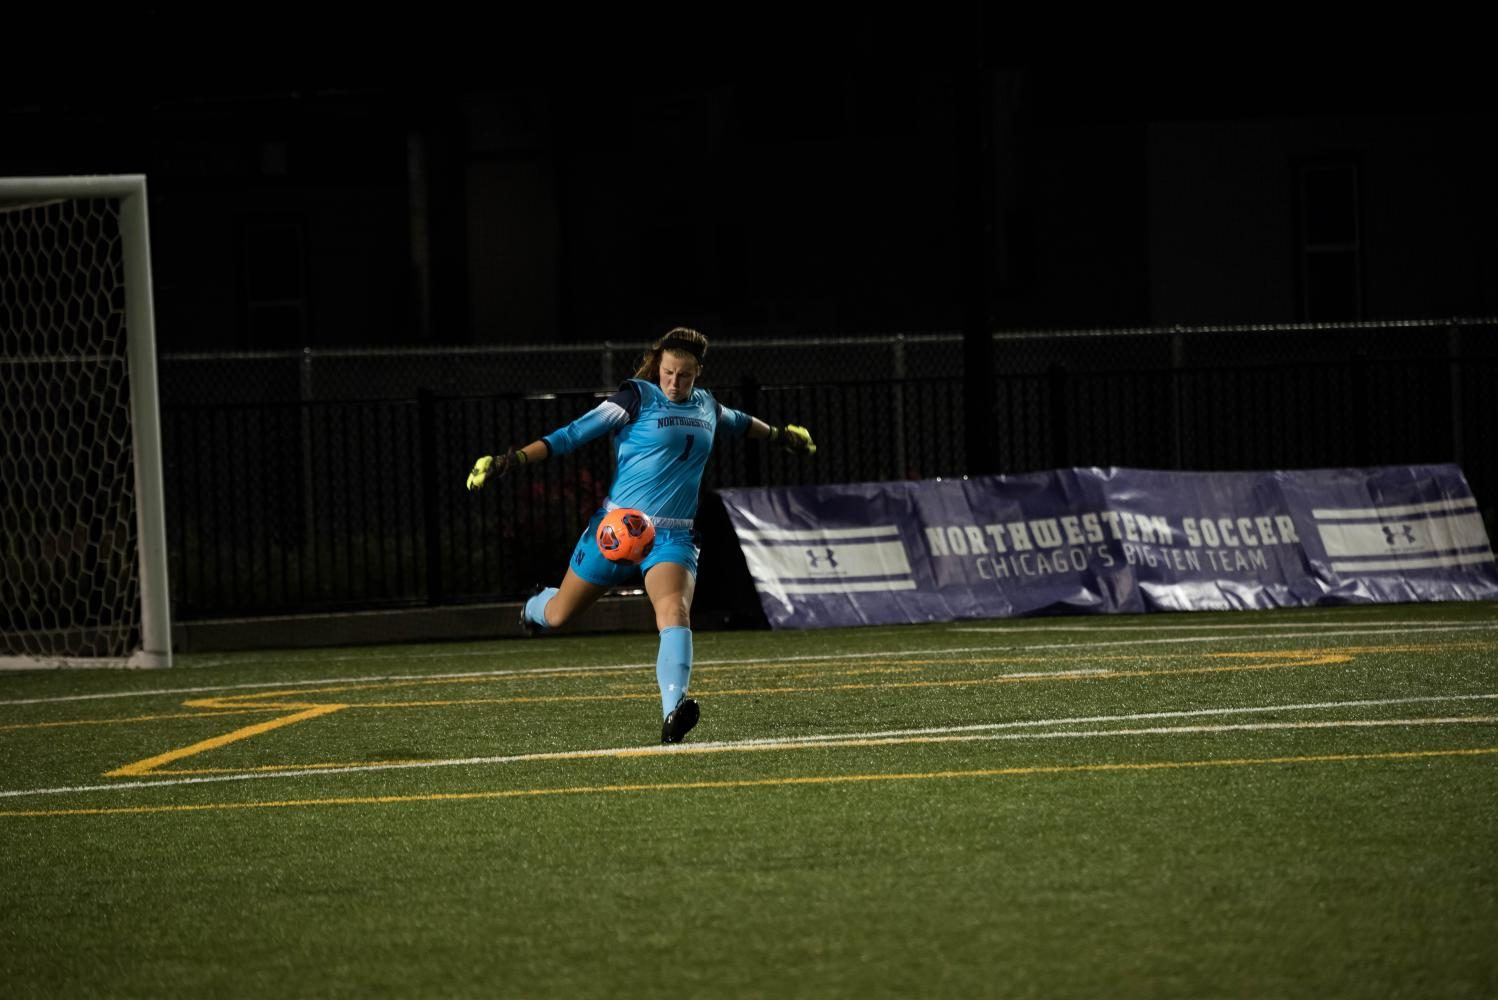 Lauren+Clem+kicks+the+ball+upfield+in+a+game+last+year.+Clem%27s+clean+sheet+helped+the+Wildcats+to+a+season-opening+win+over+DePaul+on+Friday.